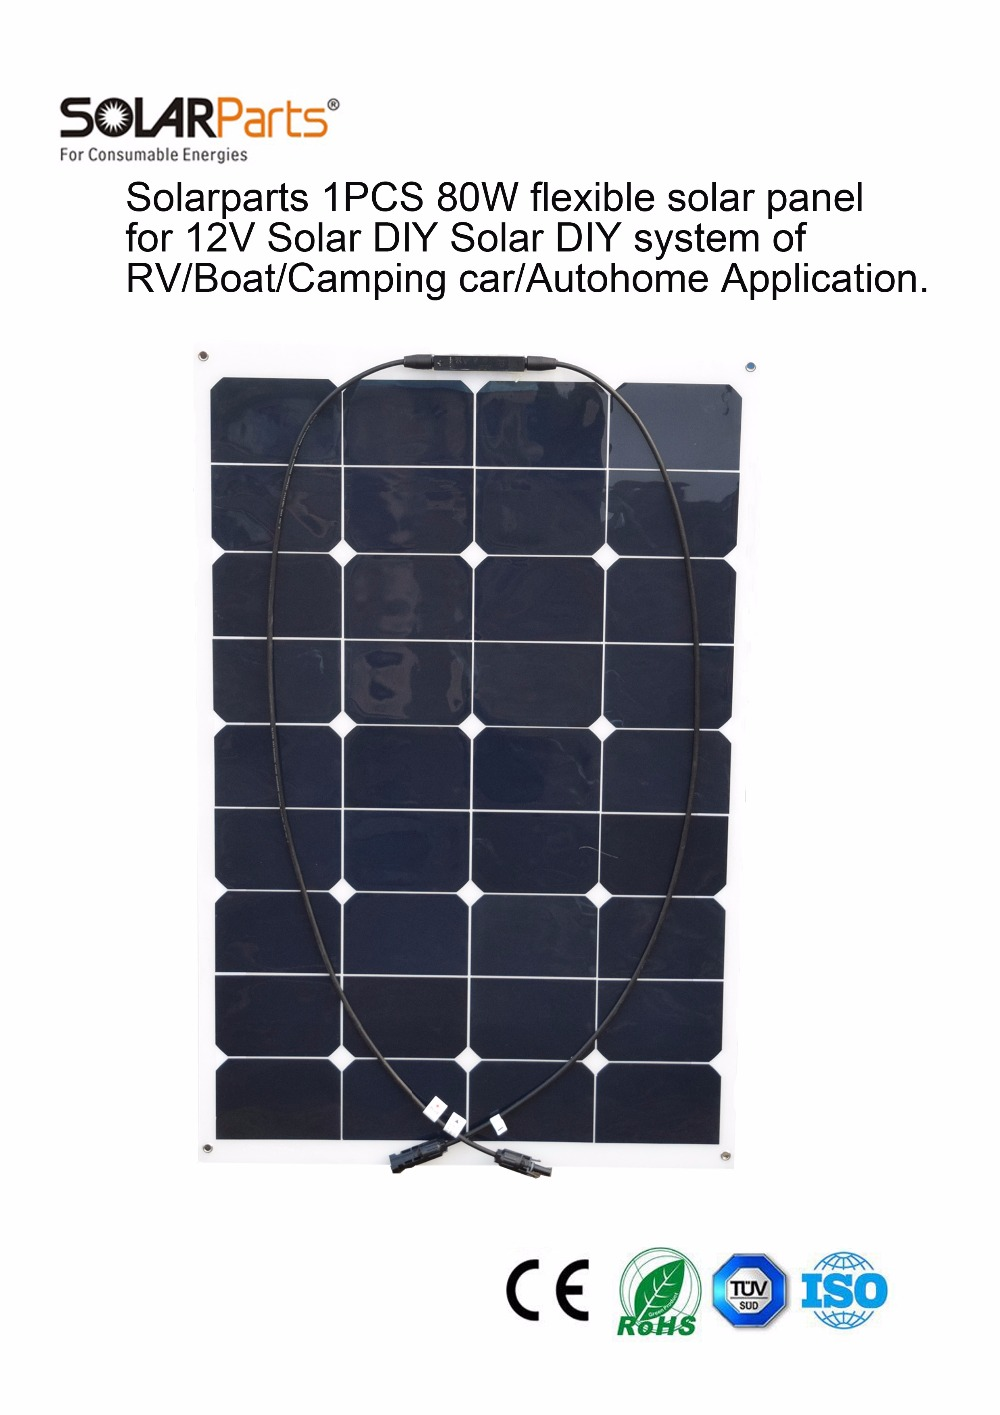 Solarparts 1x 80W flexible solar panel 12V solar system solar cell marine yacht boat RV solar module for battery charger factory(China (Mainland))